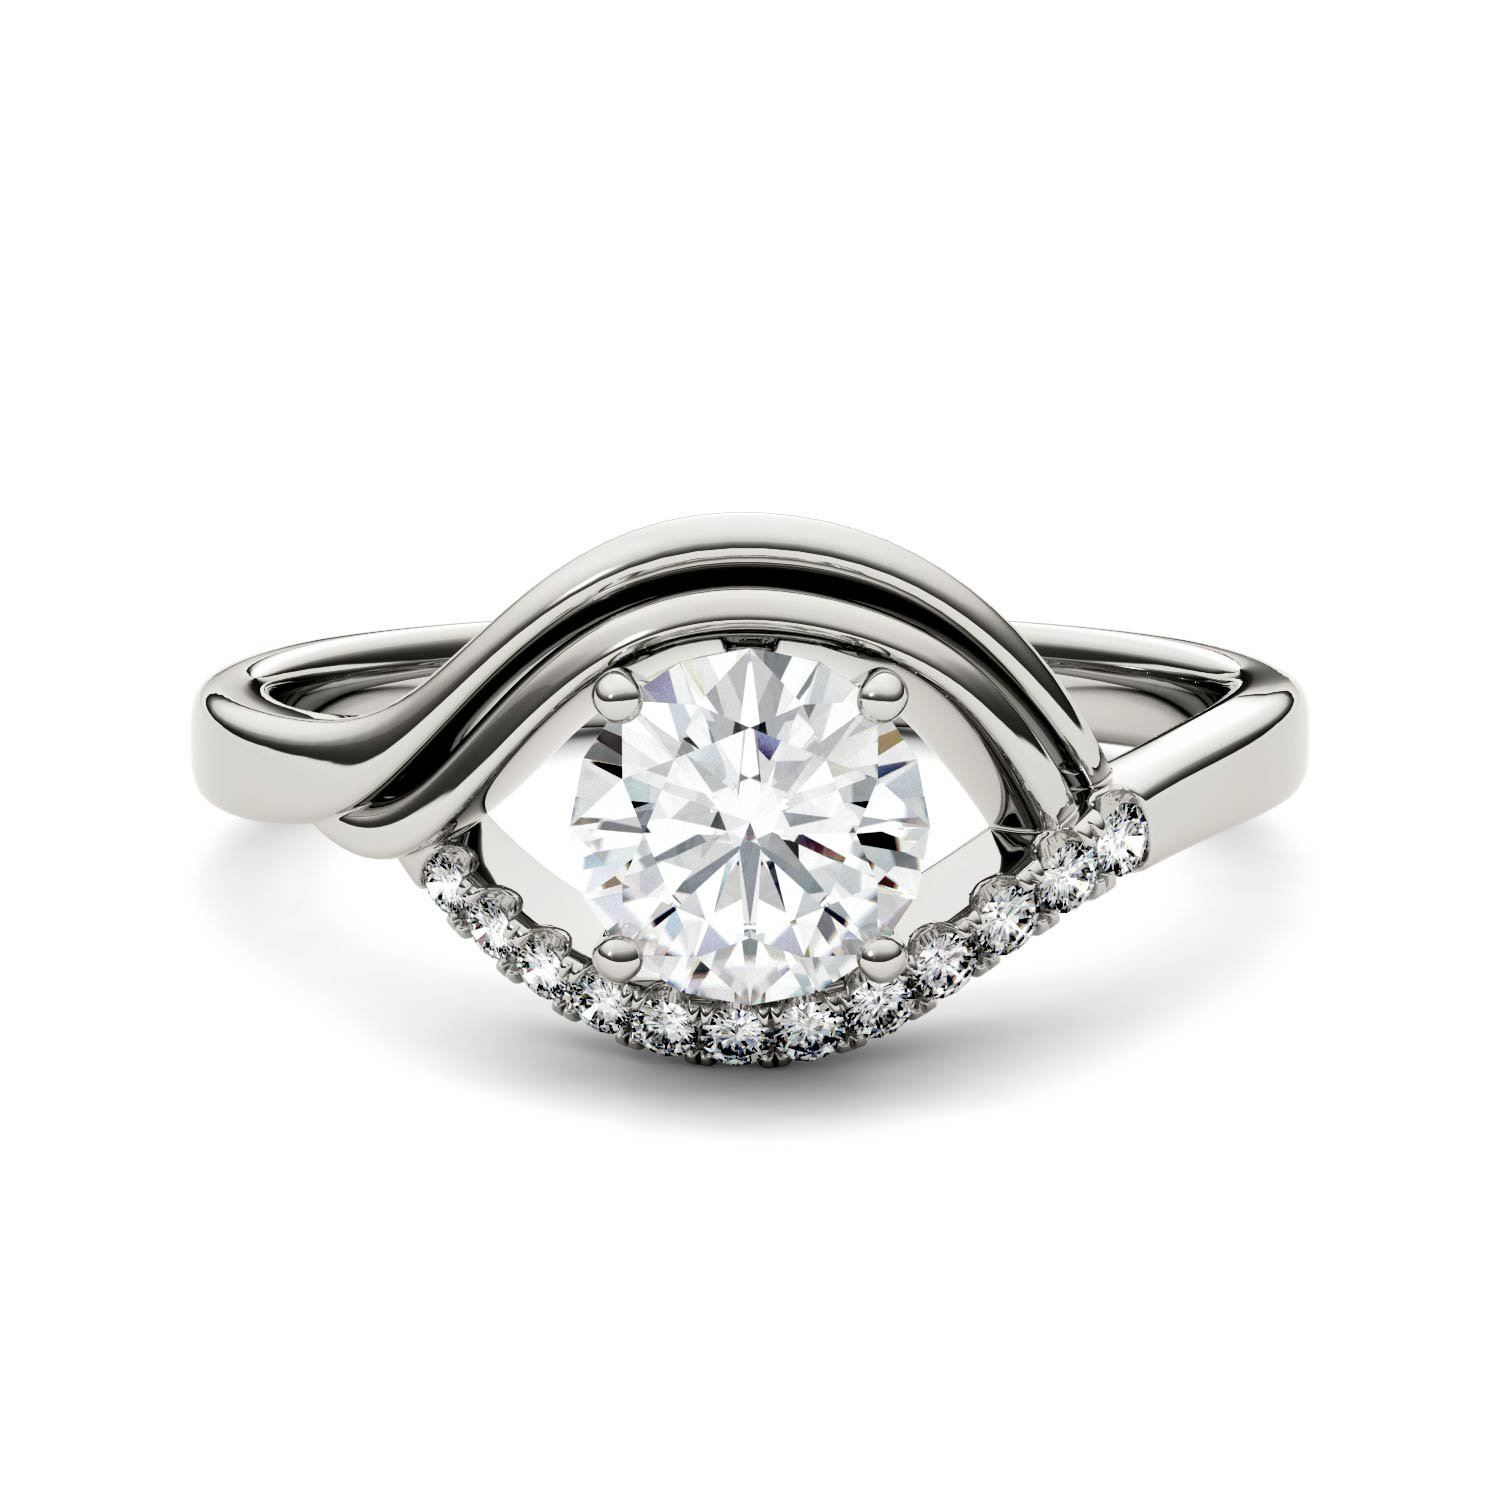 Forever Brilliant Round 6.0mm Moissanite Ring-size 6, 0.92cttw DEW By Charles & Colvard